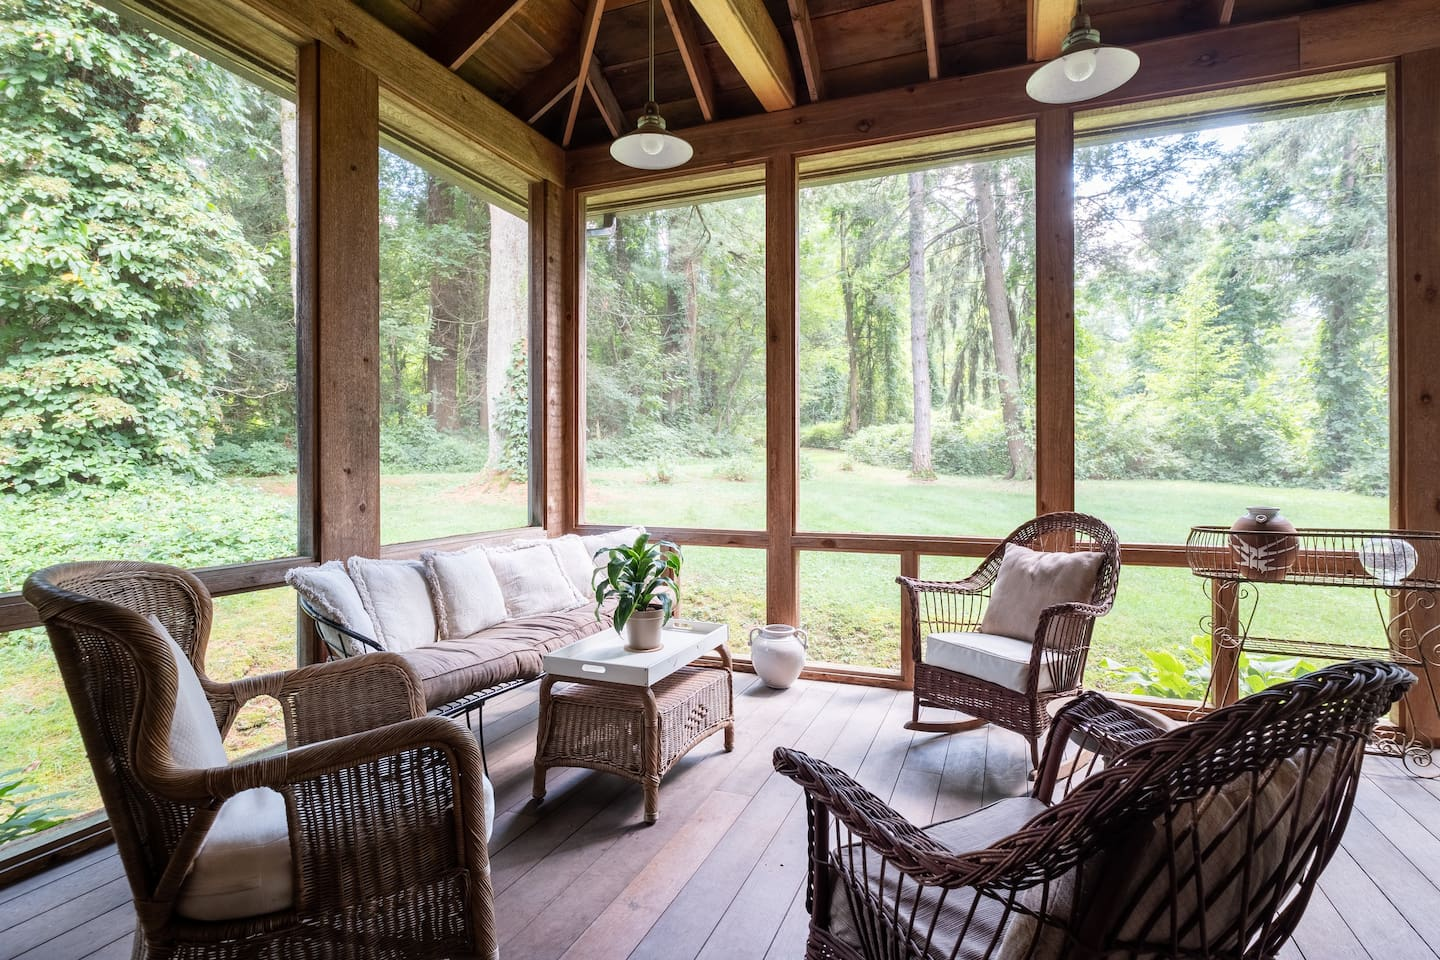 Enjoy tranquil nature privately on the very large screened porch. (No rain, no bugs, no visible neighbors.)